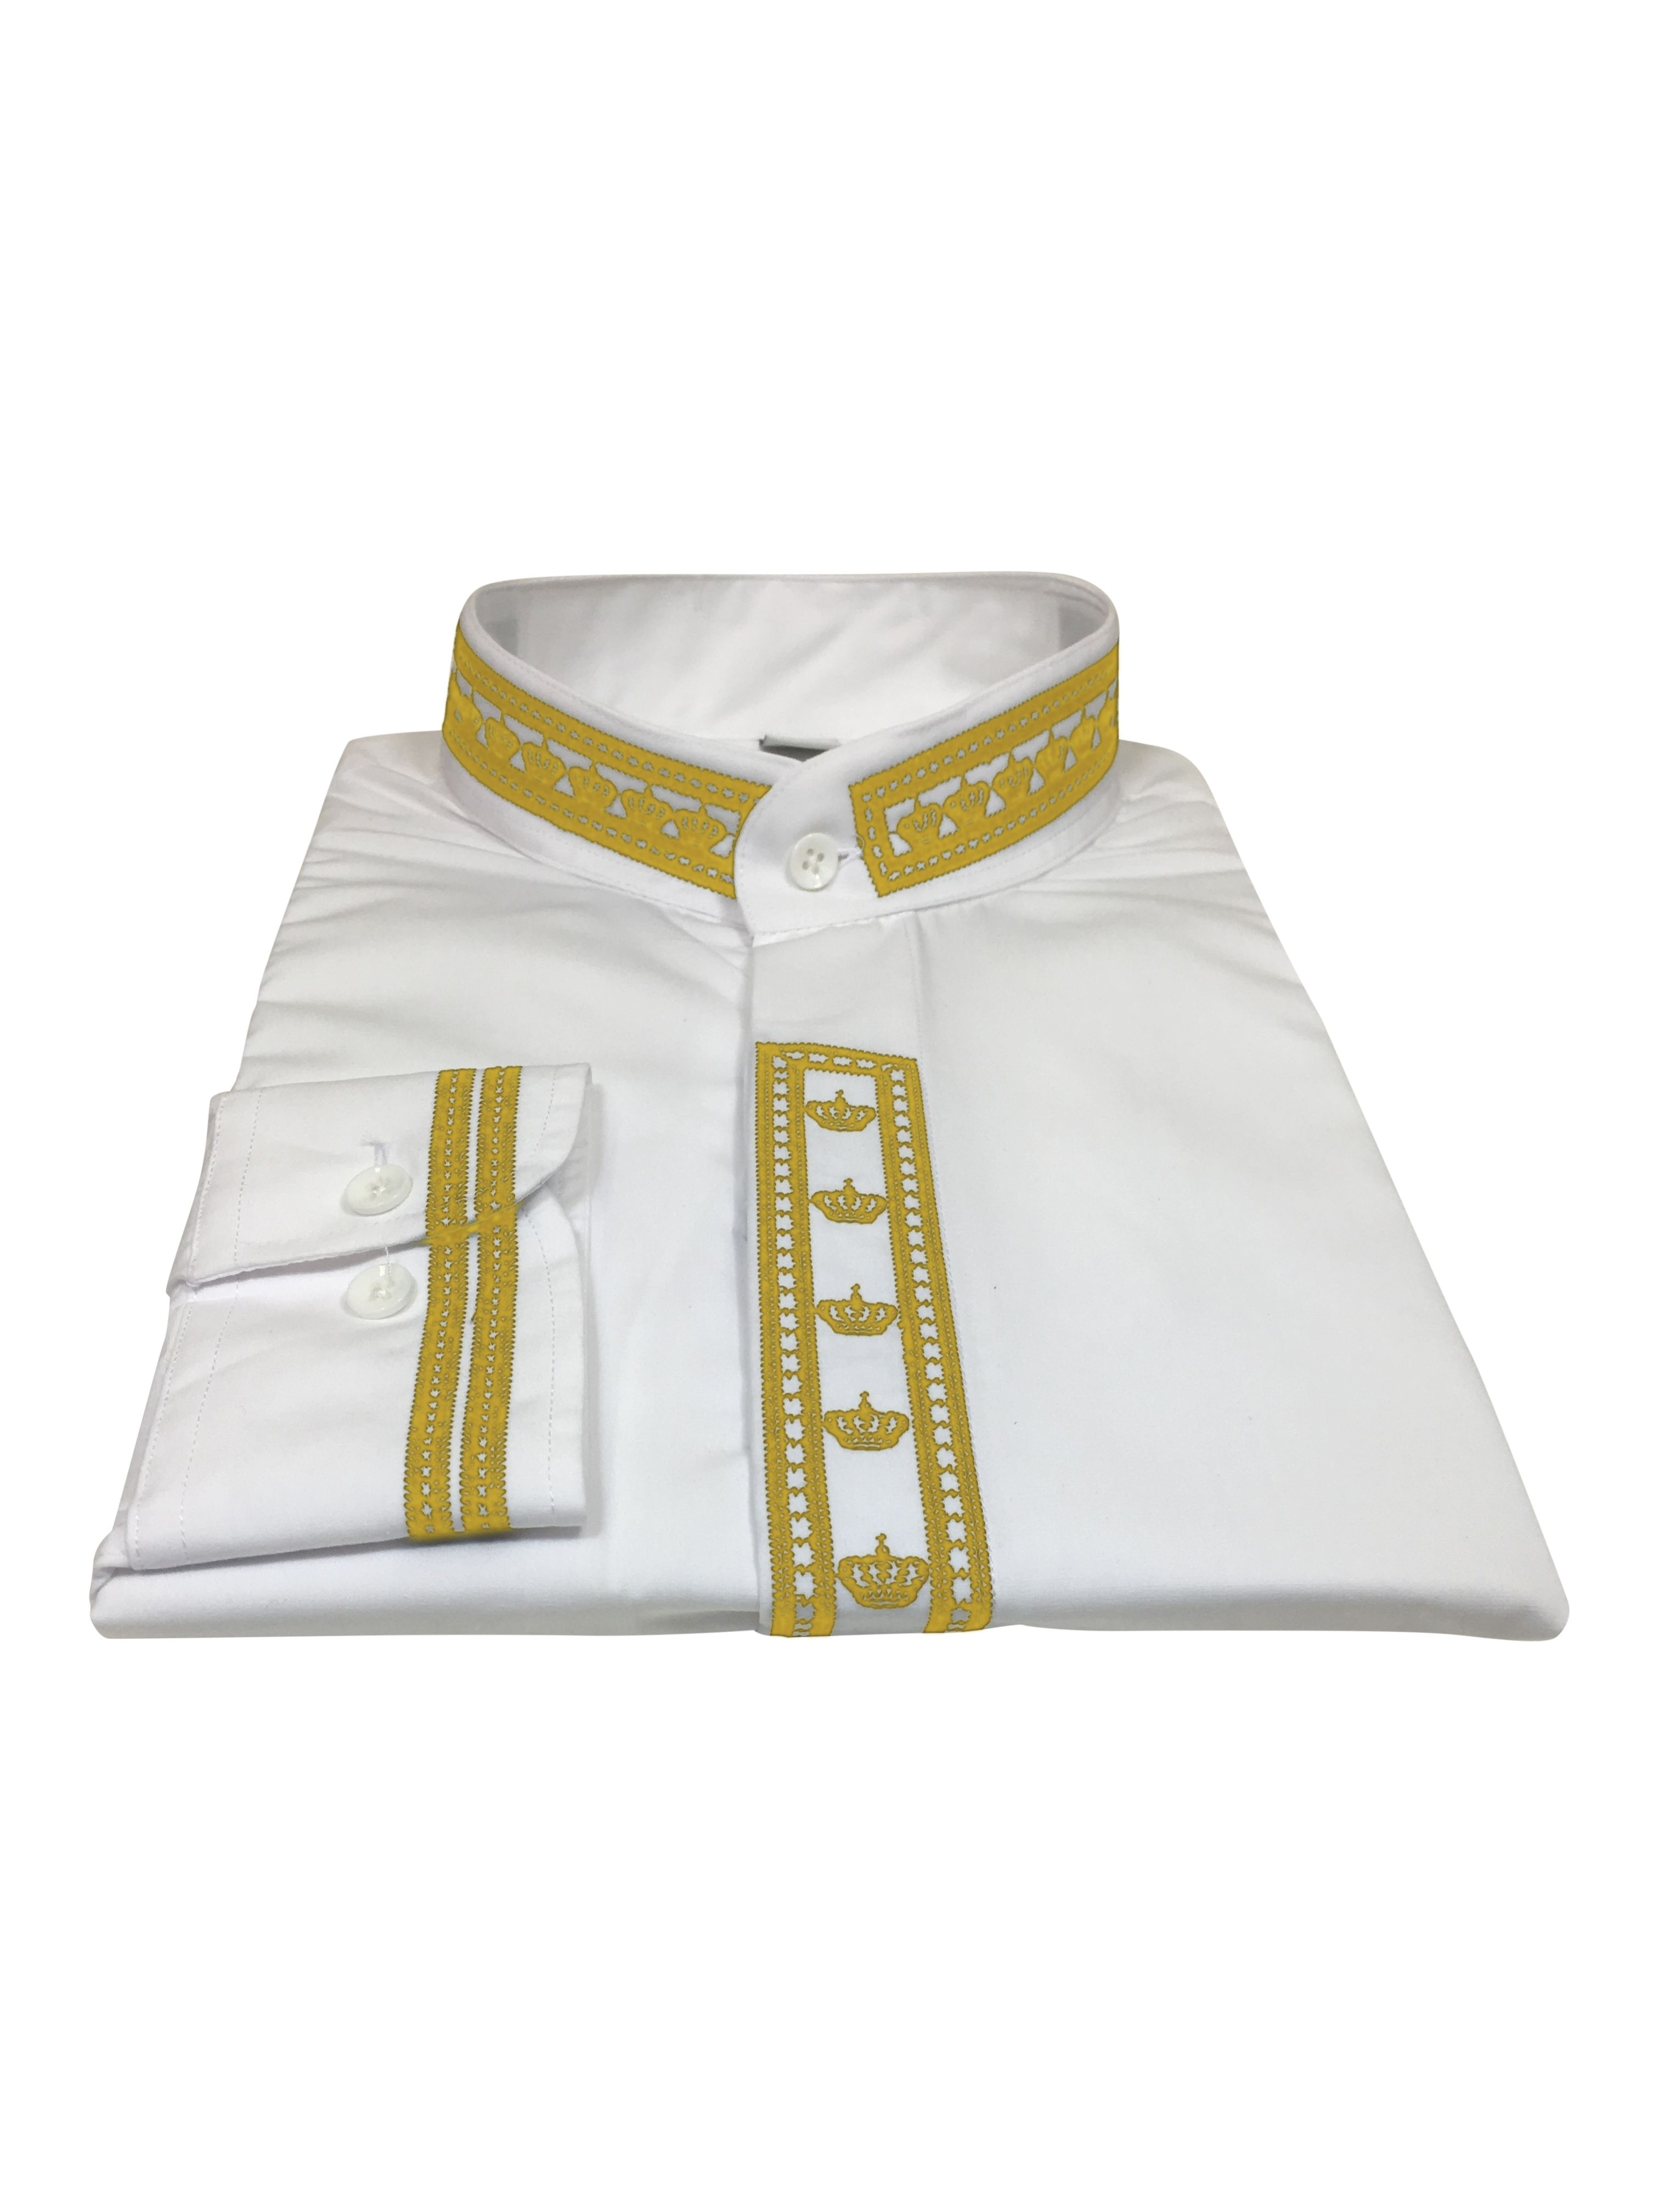 343. Men's Clergy Shirt With Rejoice Crown Fine Embroidery Long Sleeves- White/Gold